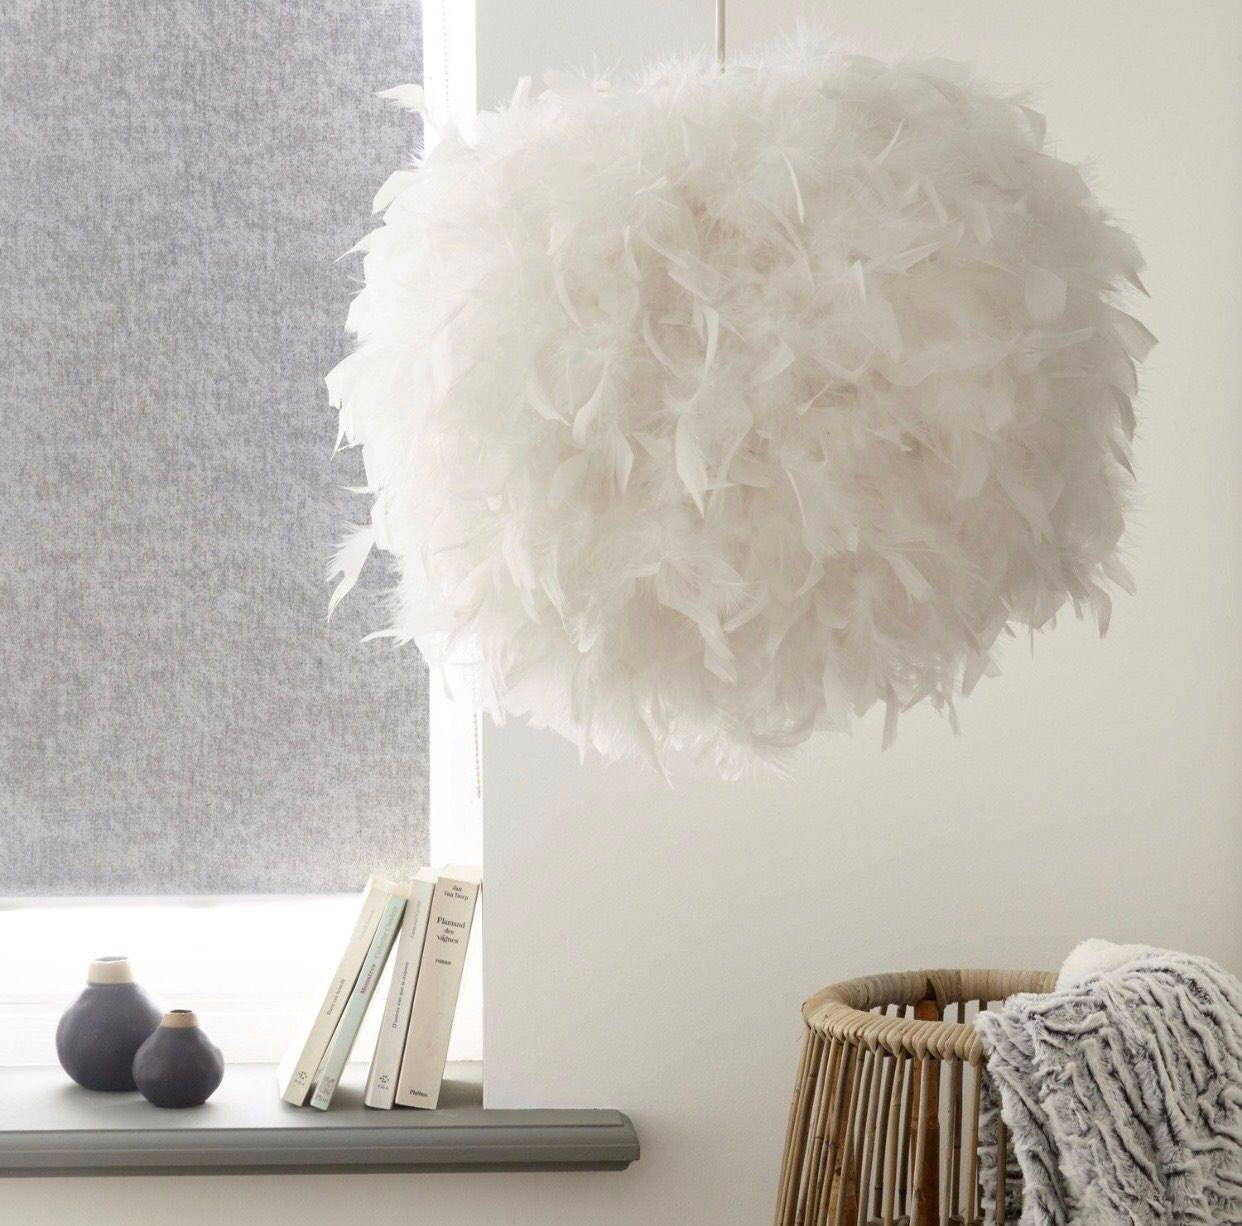 eclectic 15x15 white feather ceiling pendant light shade. Black Bedroom Furniture Sets. Home Design Ideas